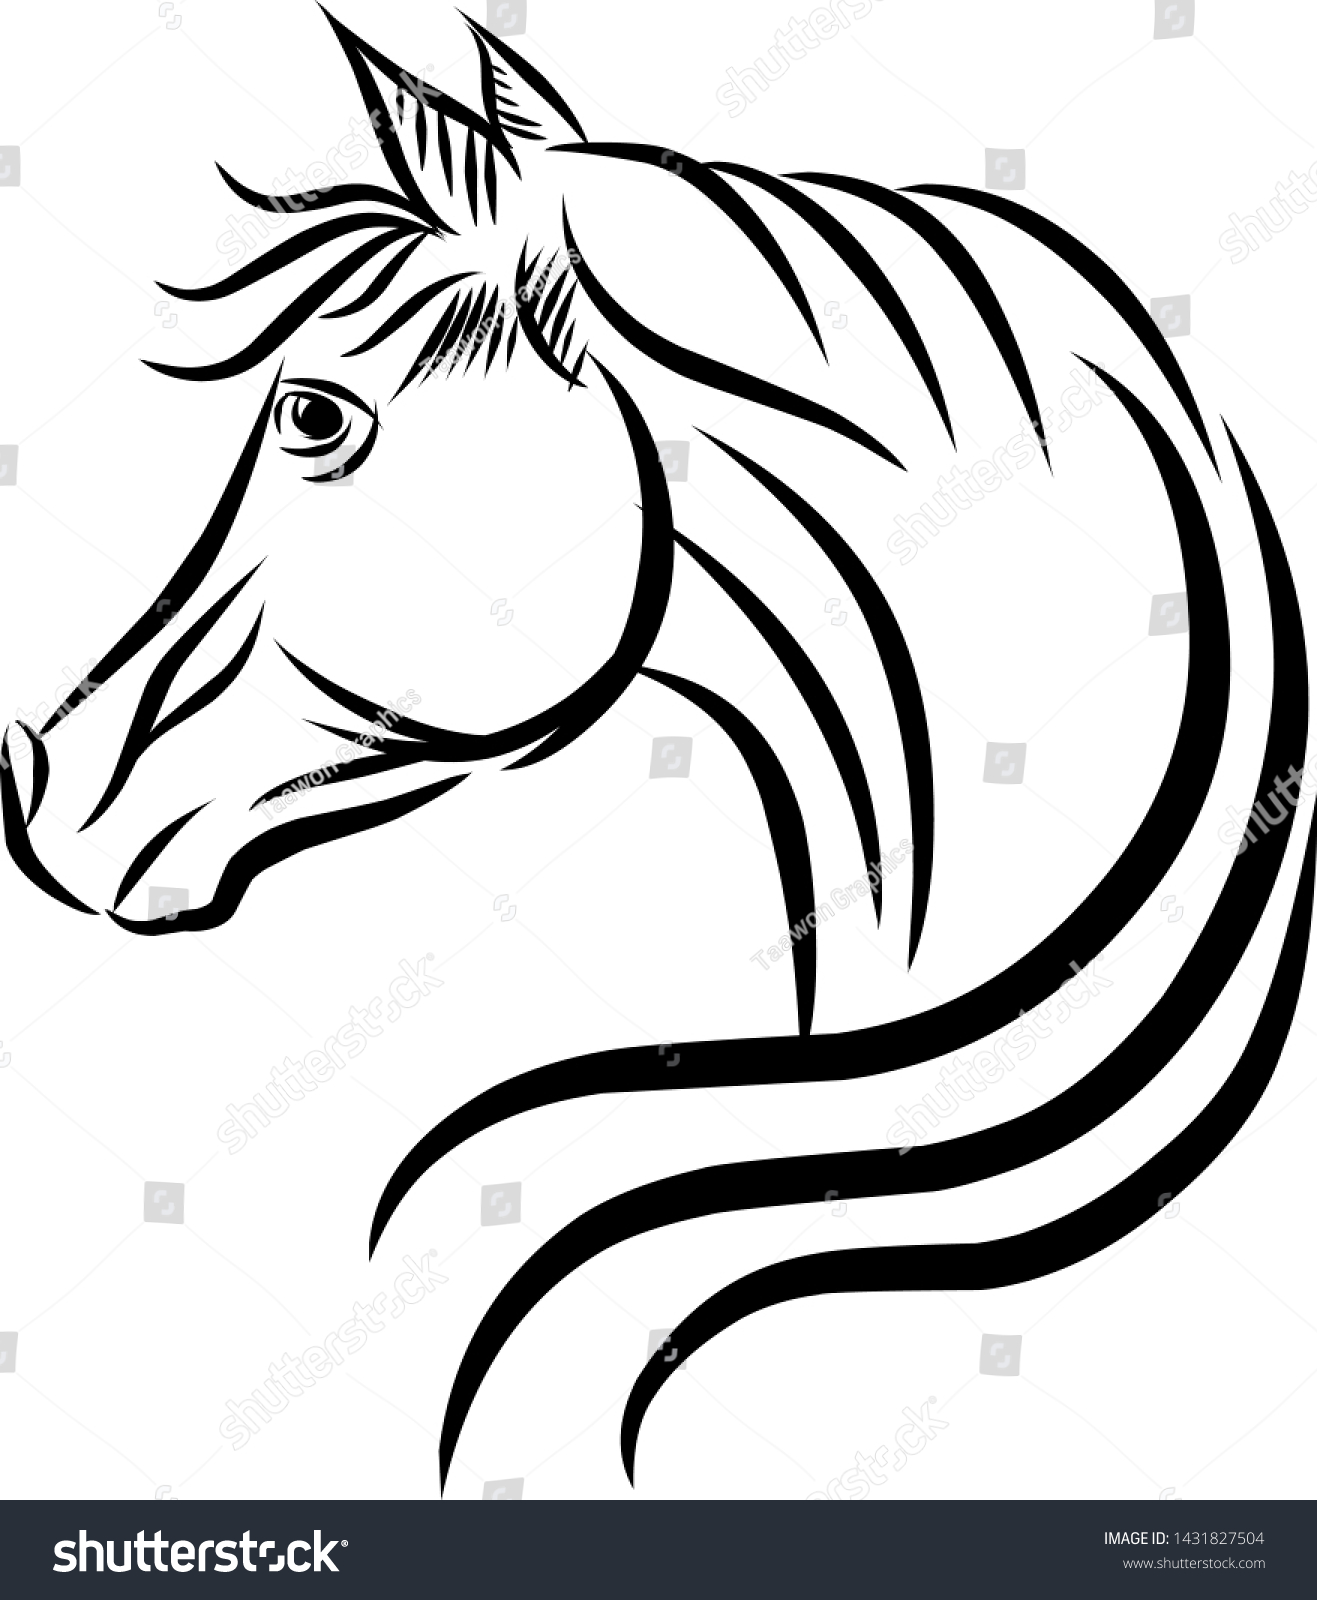 Line Drawing Horse Head Vector Icon Stock Vector Royalty Free 1431827504